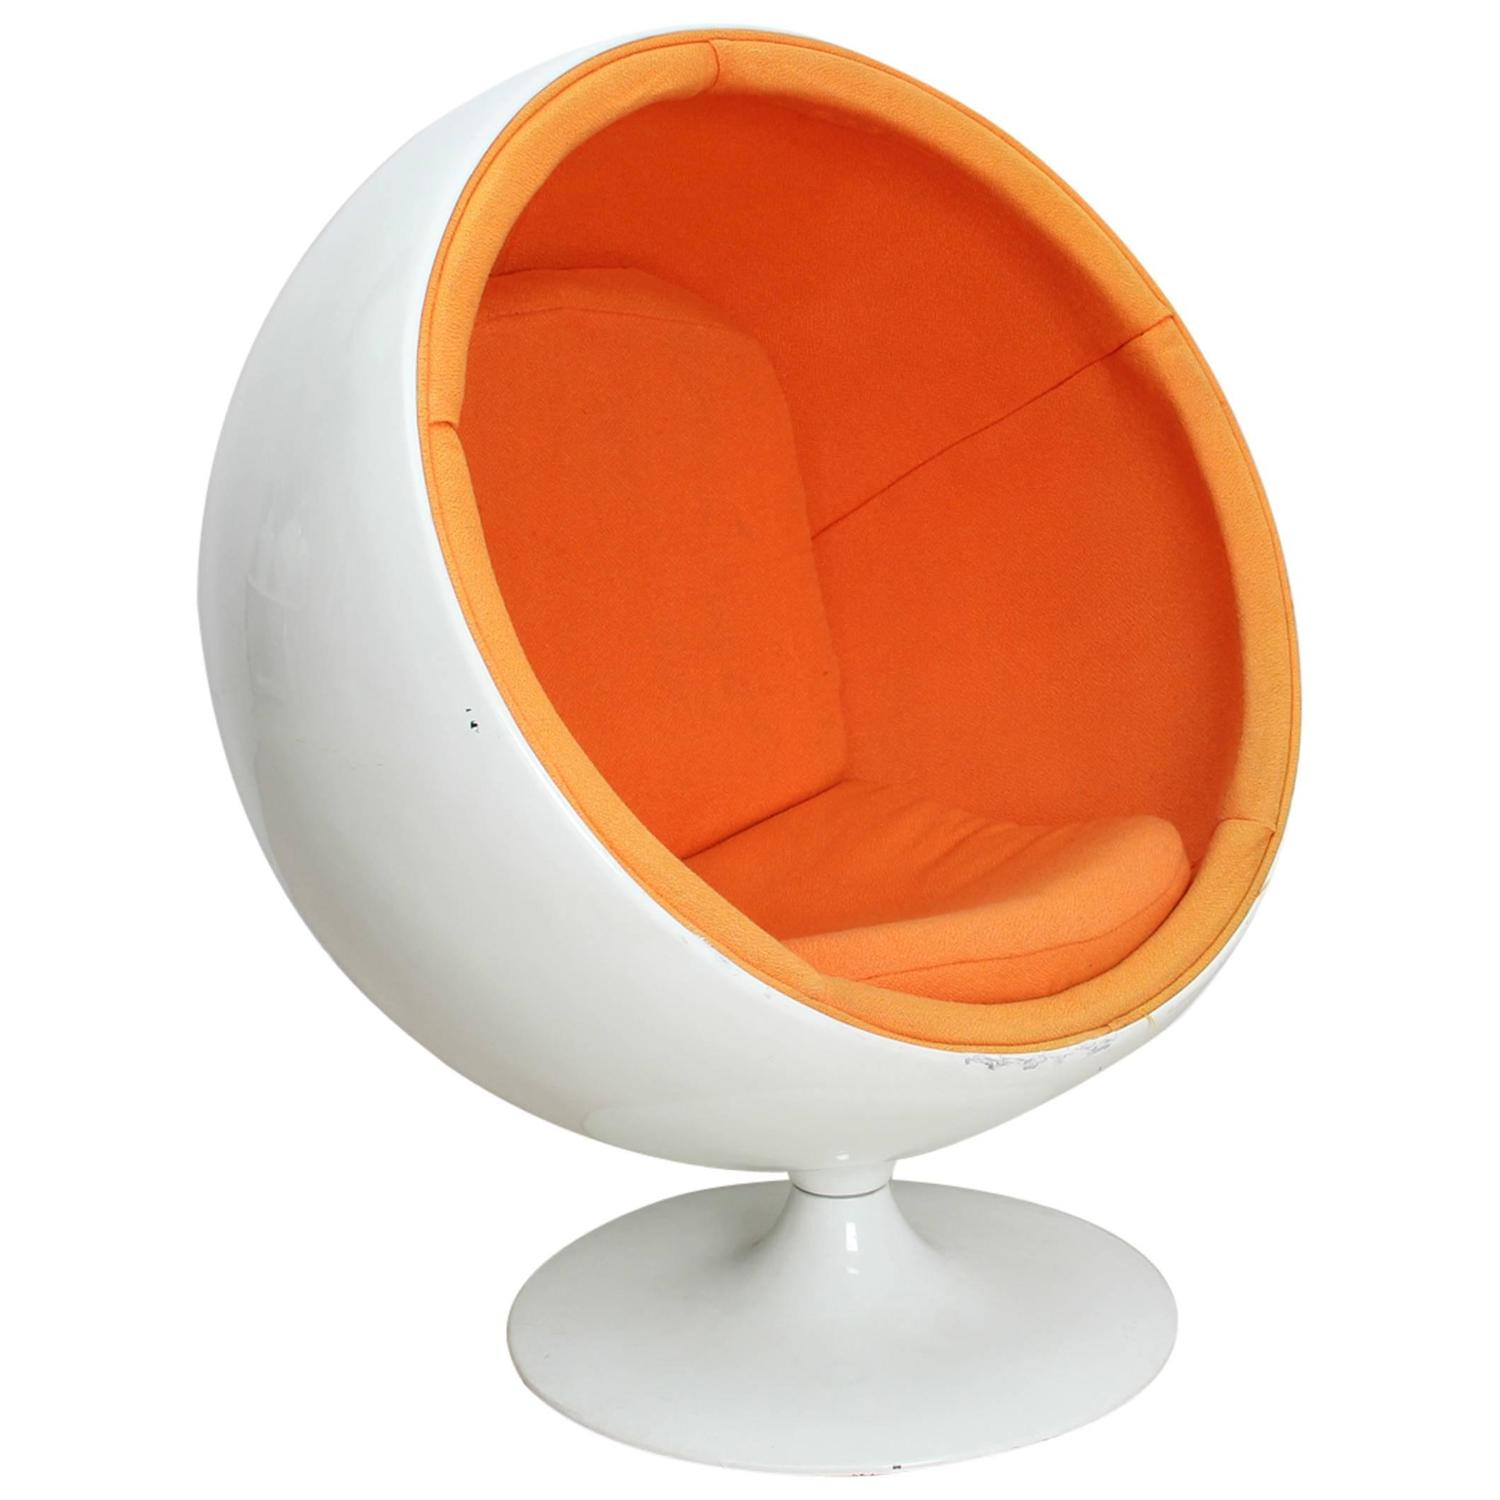 original eero aarnio bubble chair adelta finland at stdibs - ball chair for kids by eero aarnio ed adelta